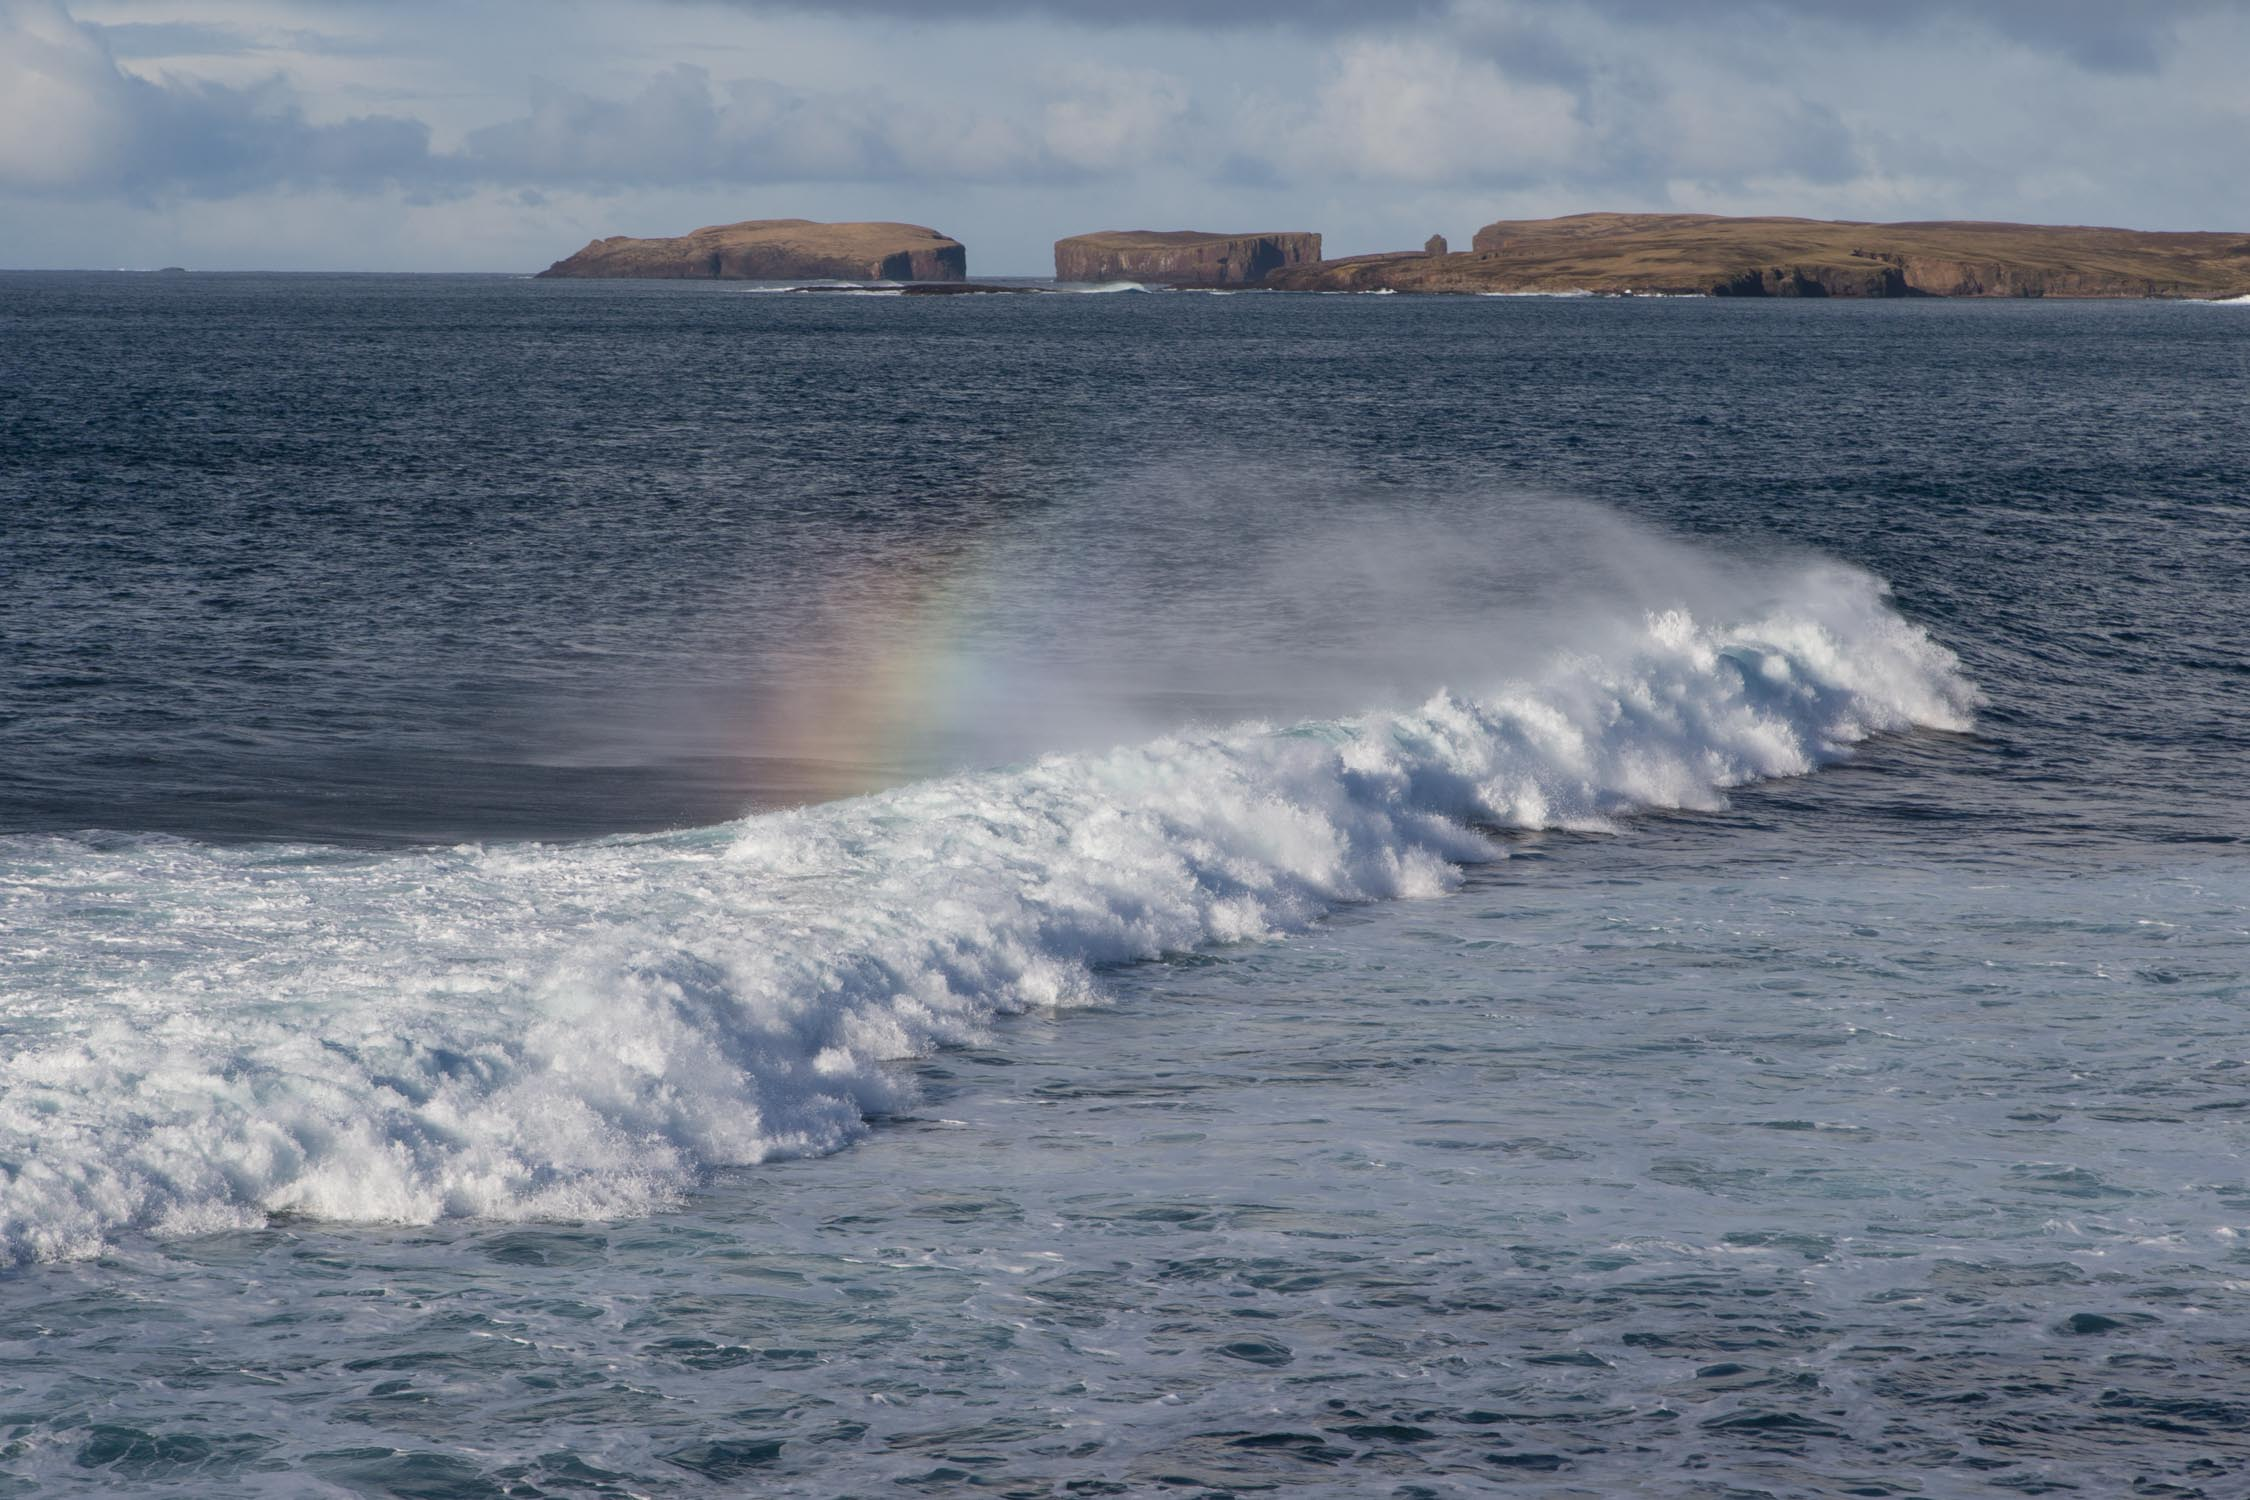 Photograph taken from Sandness, Shetland looking out towards the Sound of Papa with the island of Papa Stour in the distance.